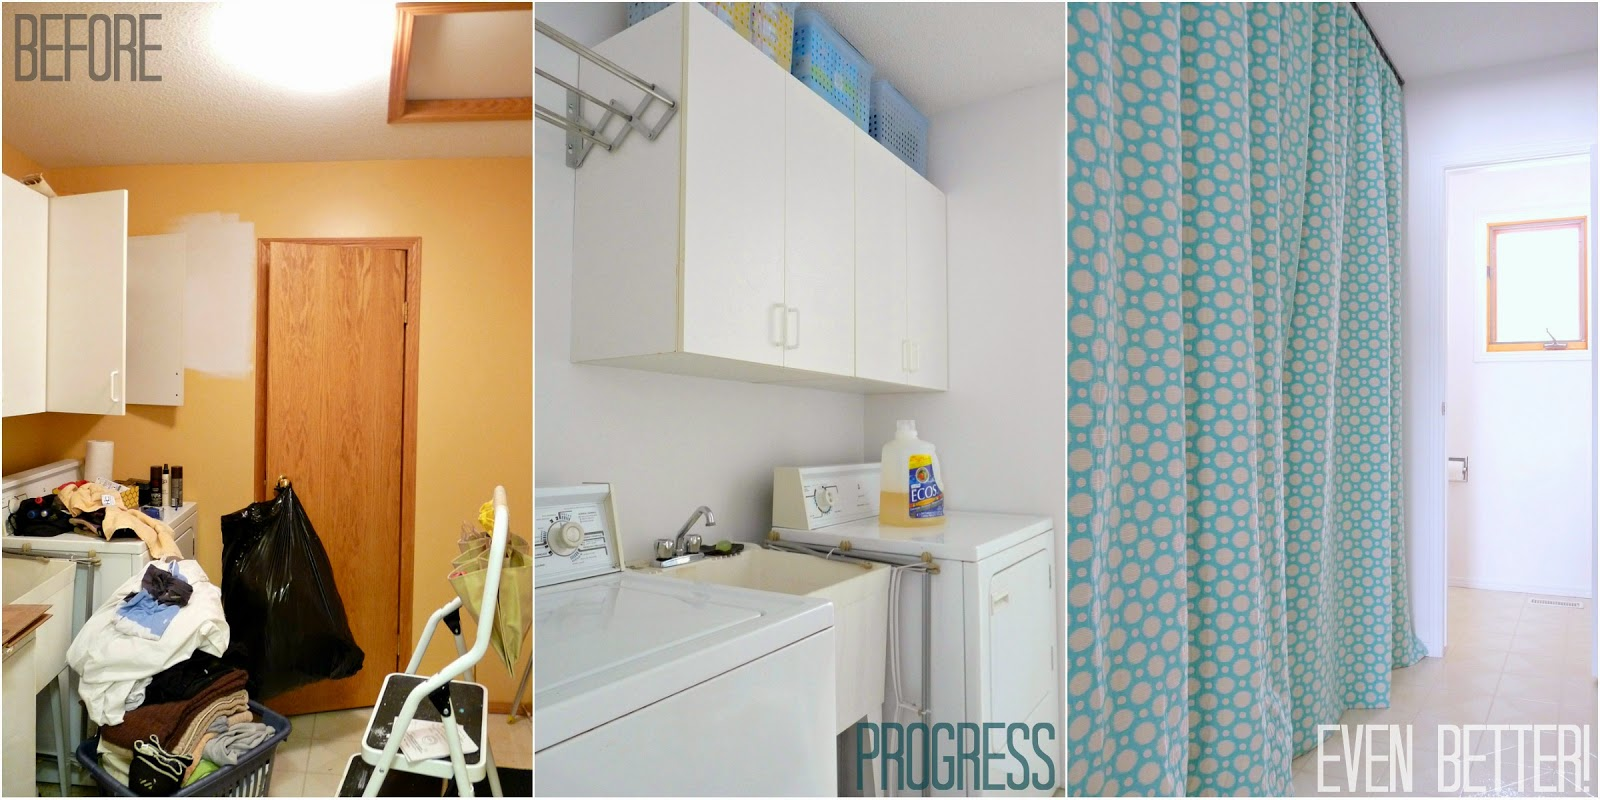 Hide a washer and dryer with easy diy gathered laundry room curtains on a track dans le lakehouse